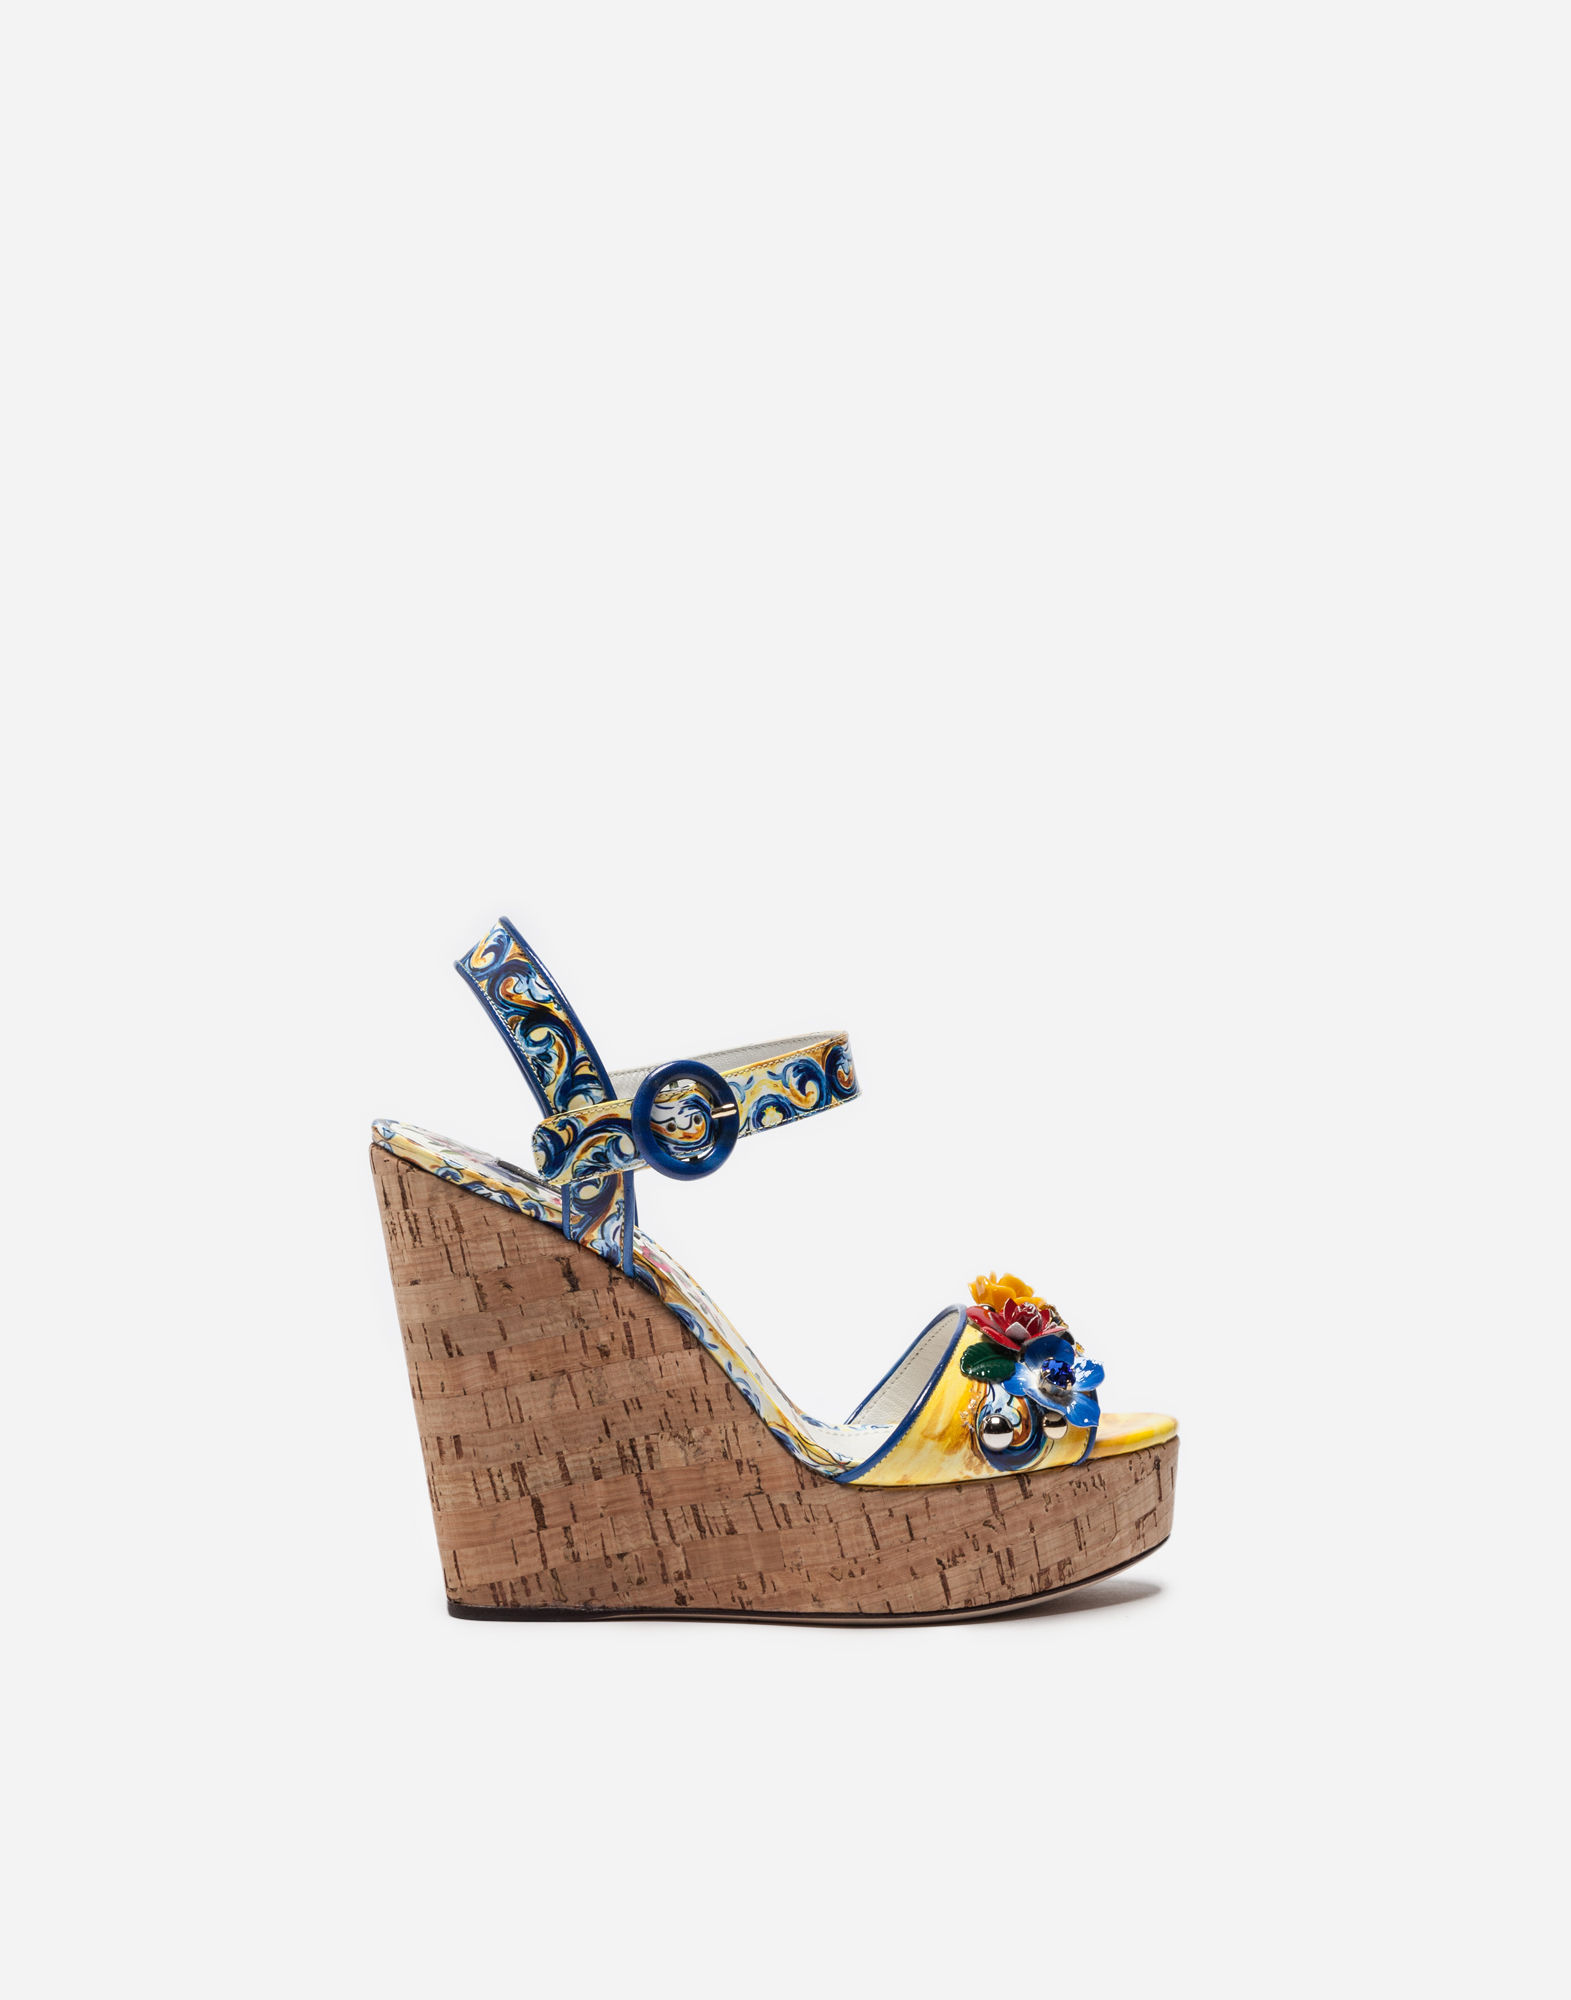 Dolce & Gabbana Wedge Sandals In Cork And Printed Varnish In Multicolor